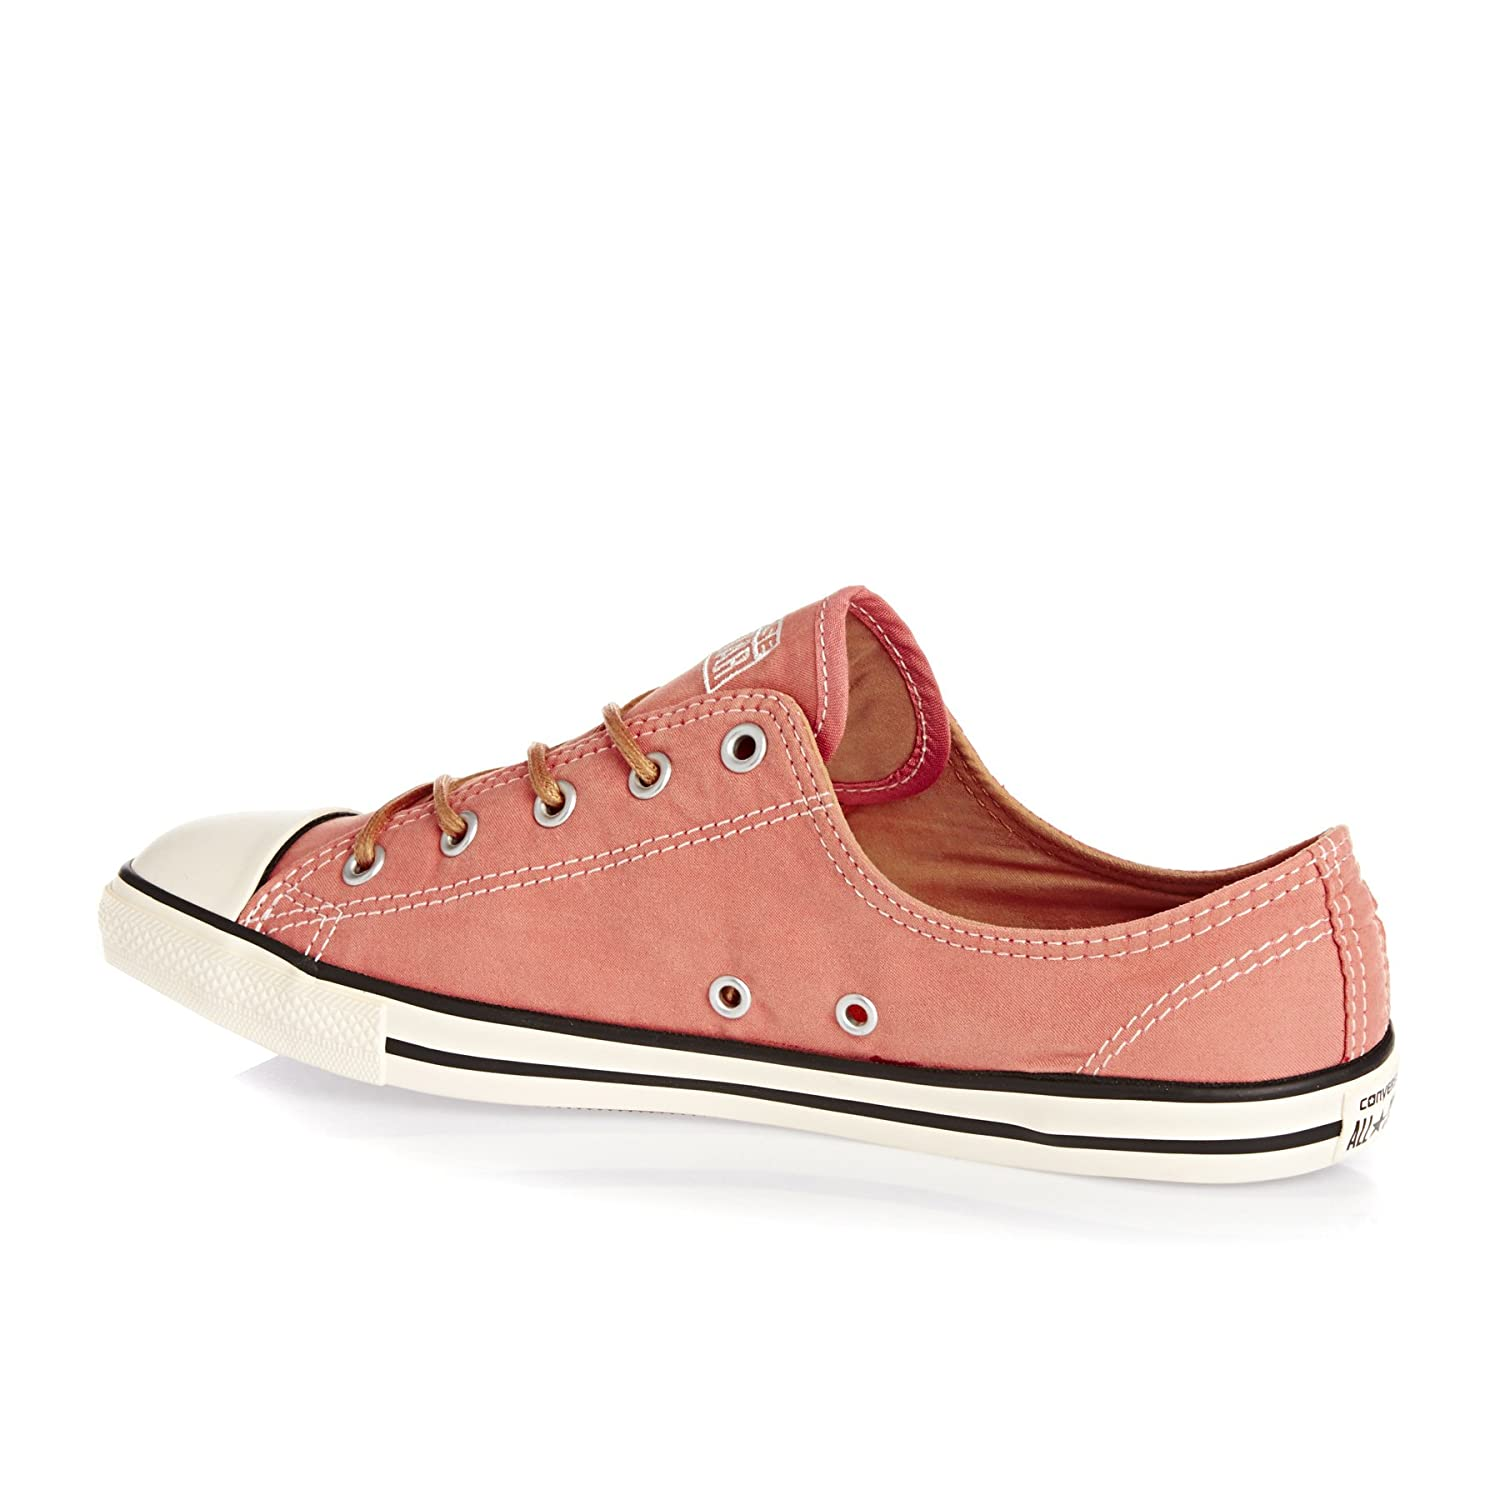 20b0787f553b Converse 553418 °C Dainty Womens Trainers Peached Canvas Pink Blush Biscuit  Egret Pink Size  5.5 UK  Amazon.co.uk  Shoes   Bags